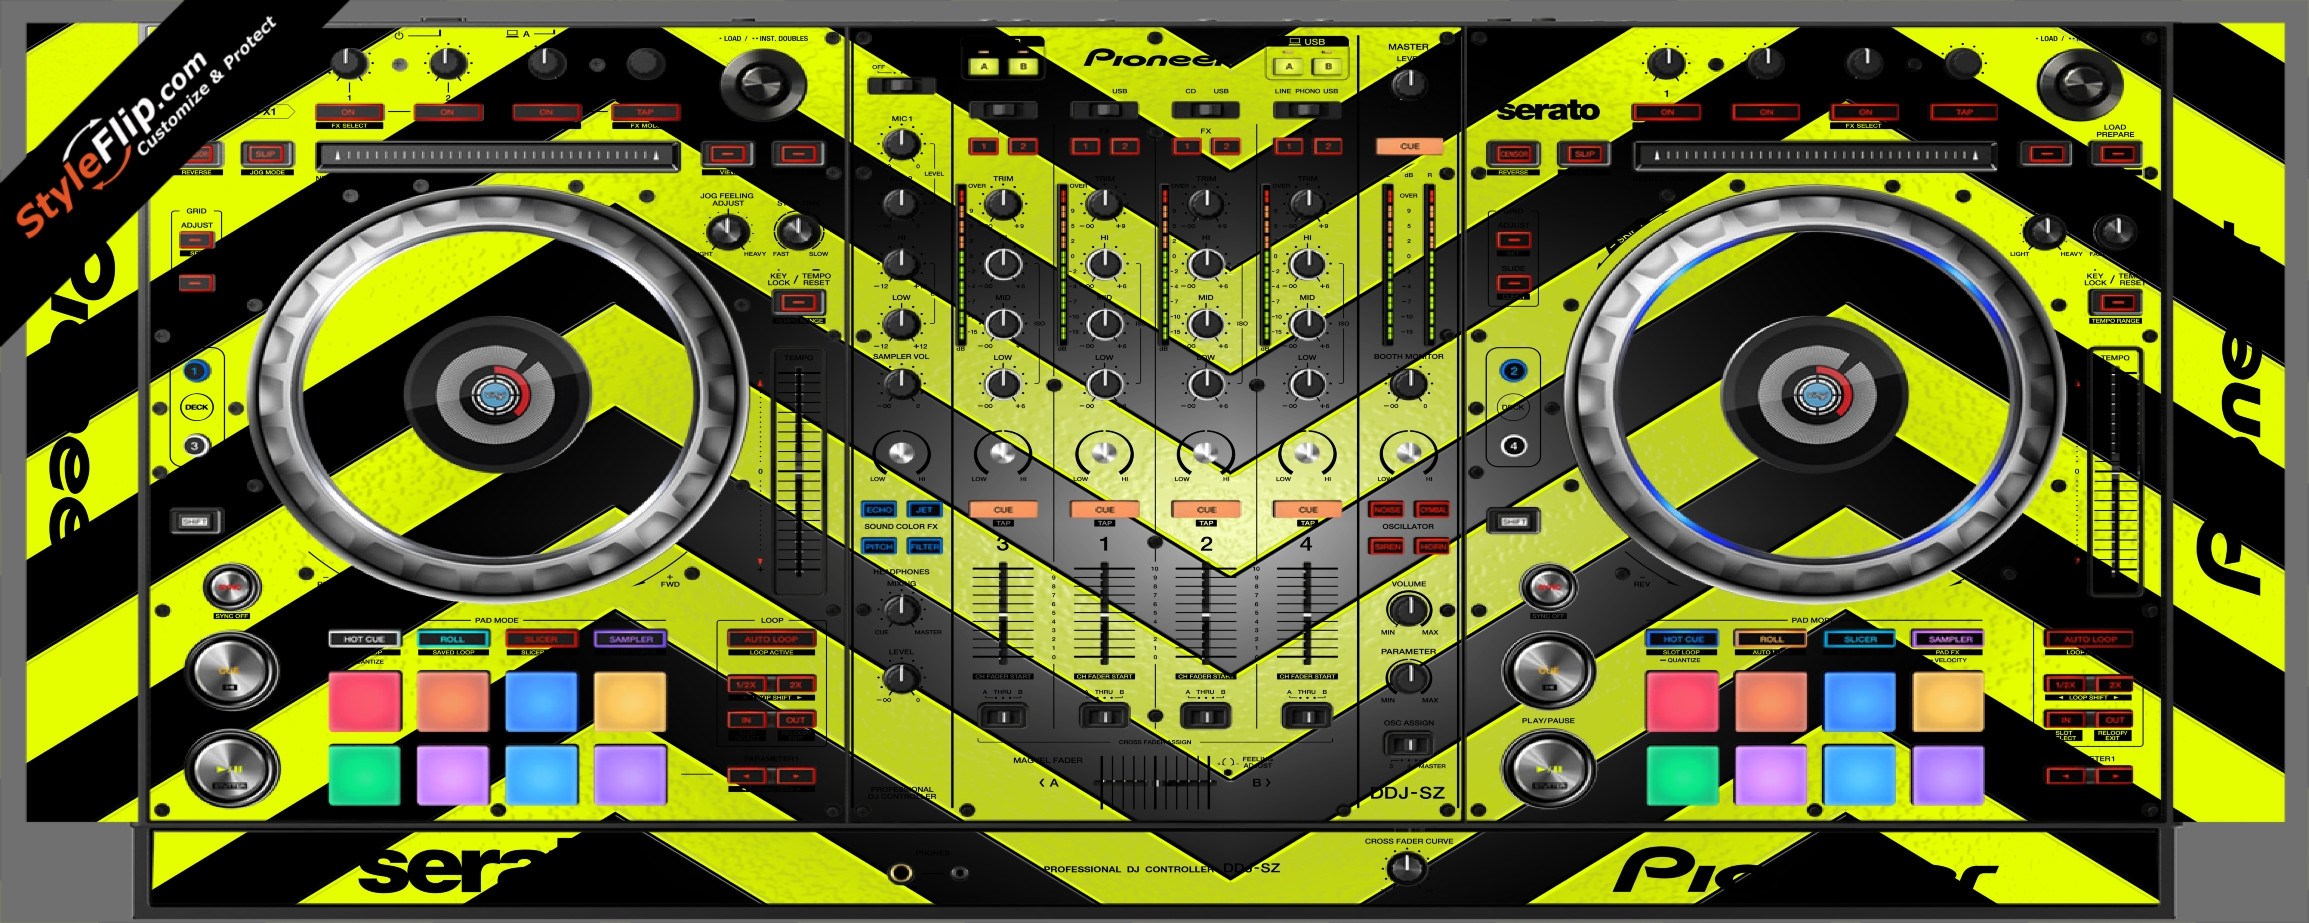 Black & Yellow Chevron Pioneer DDJ-SZ